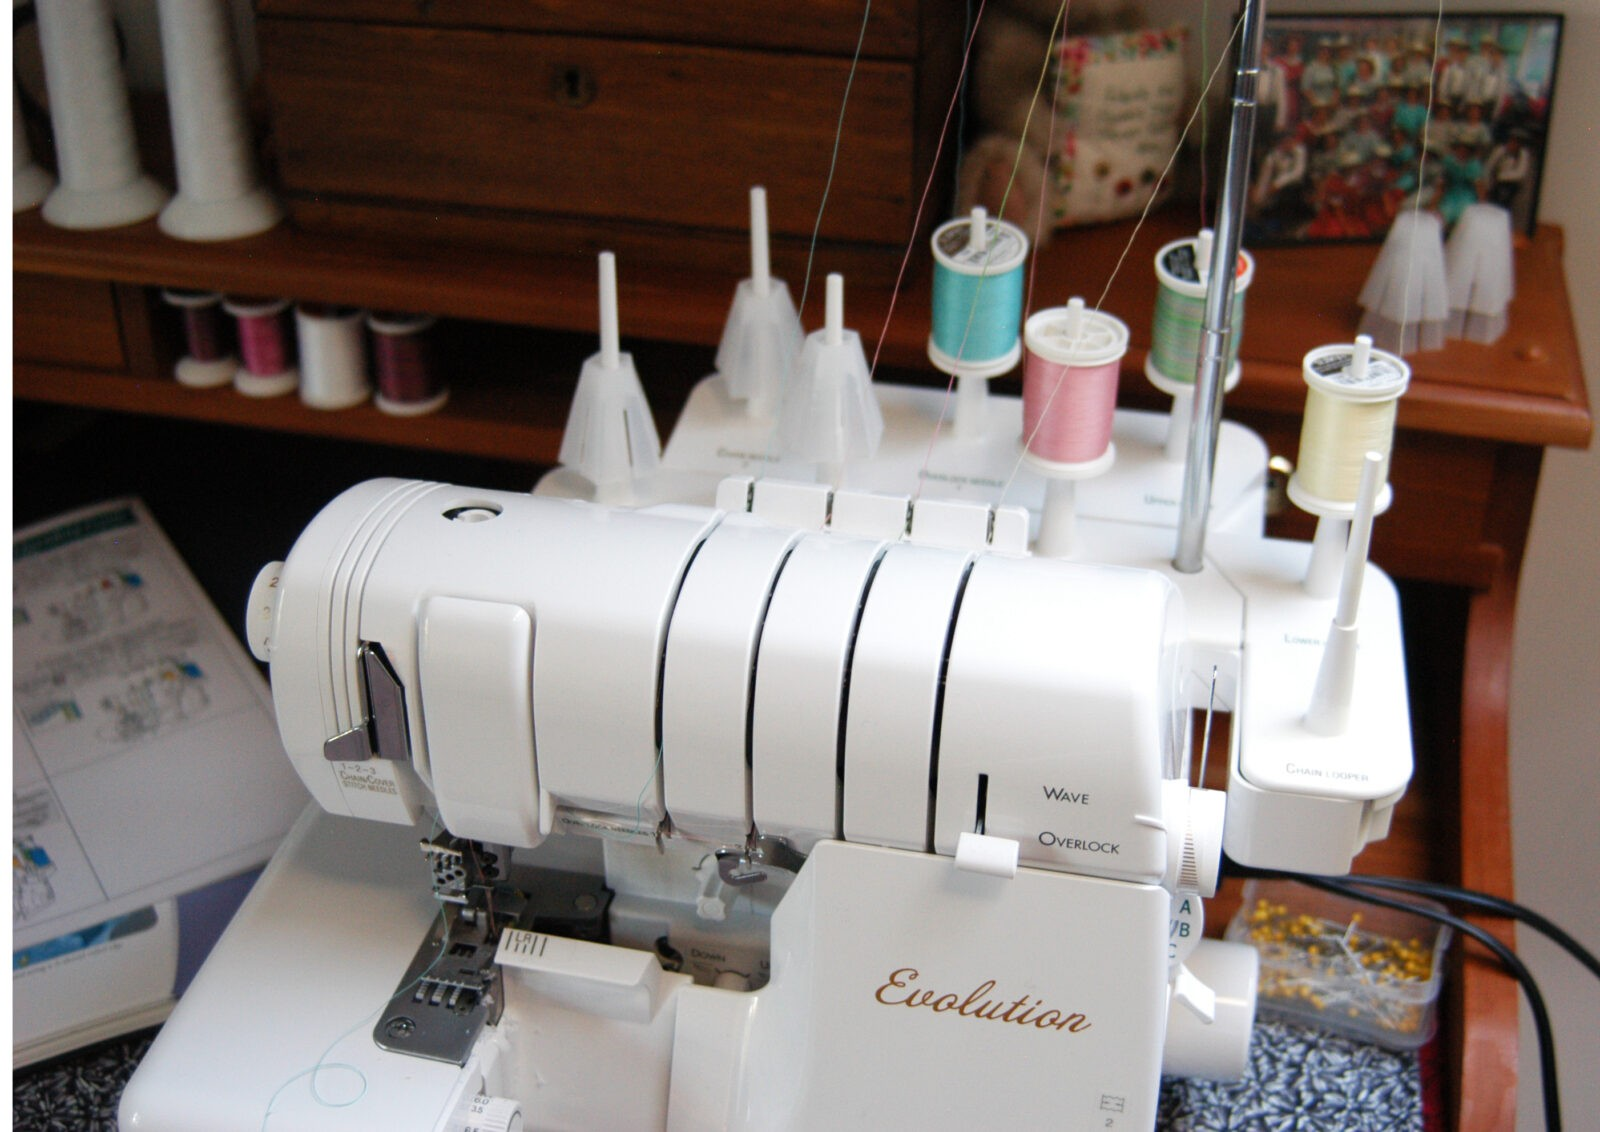 Diy 4th Of July Place Mats In A Serger Sulky Sewing Machine Threading Diagram Pinterest Appreciating That Cotton Blendables Thread Performs Well So Many Applications My Curiosity Got The Better Me And I Began To Wonder How This